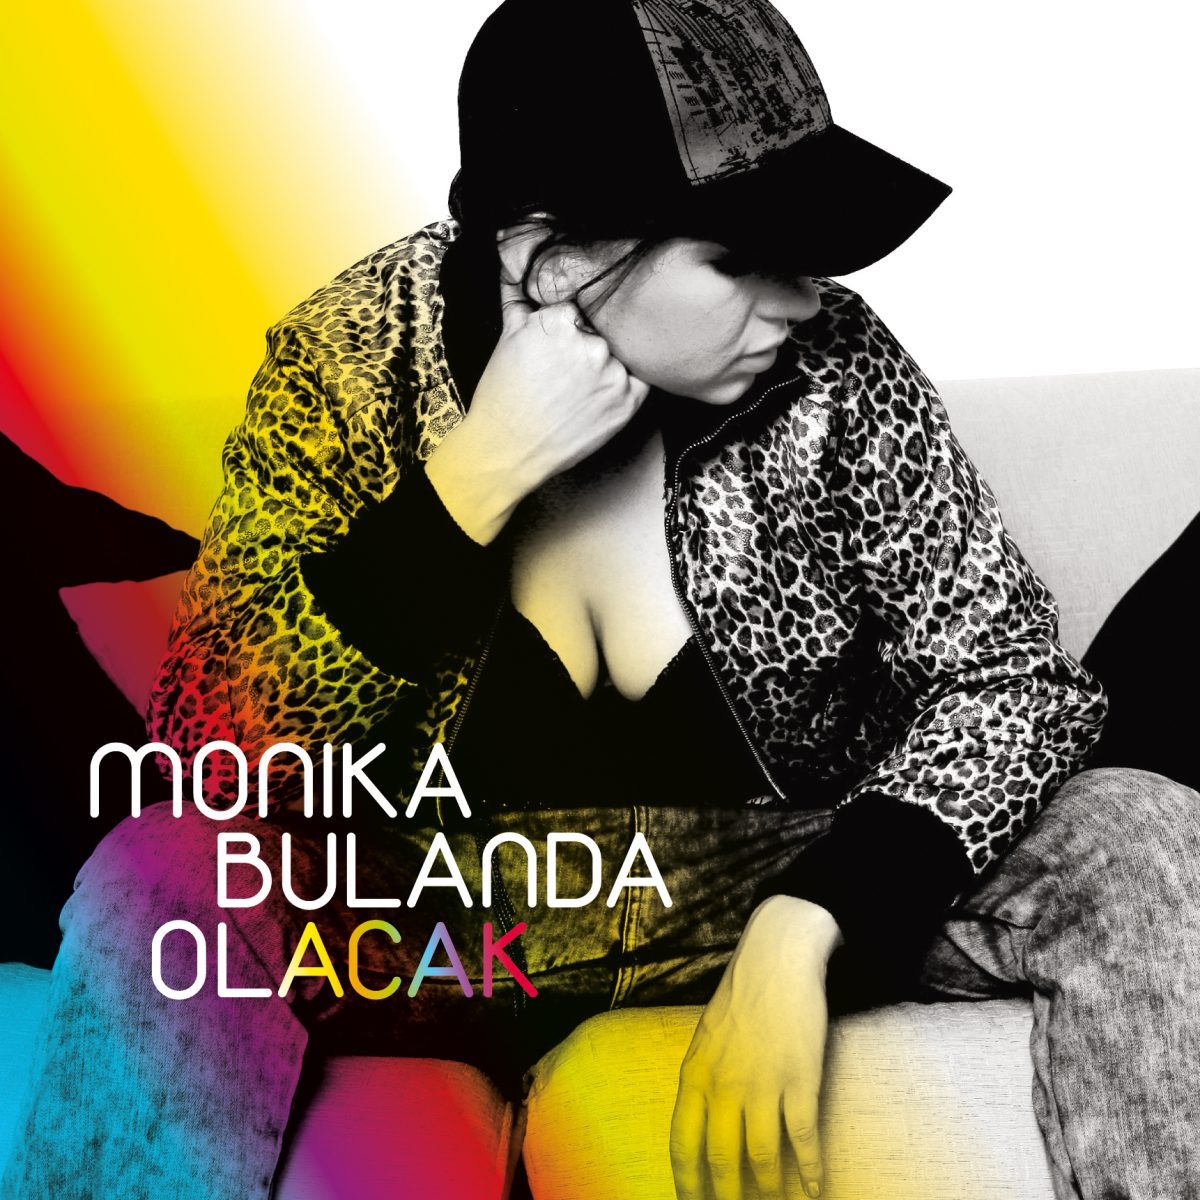 CD Cover of the song